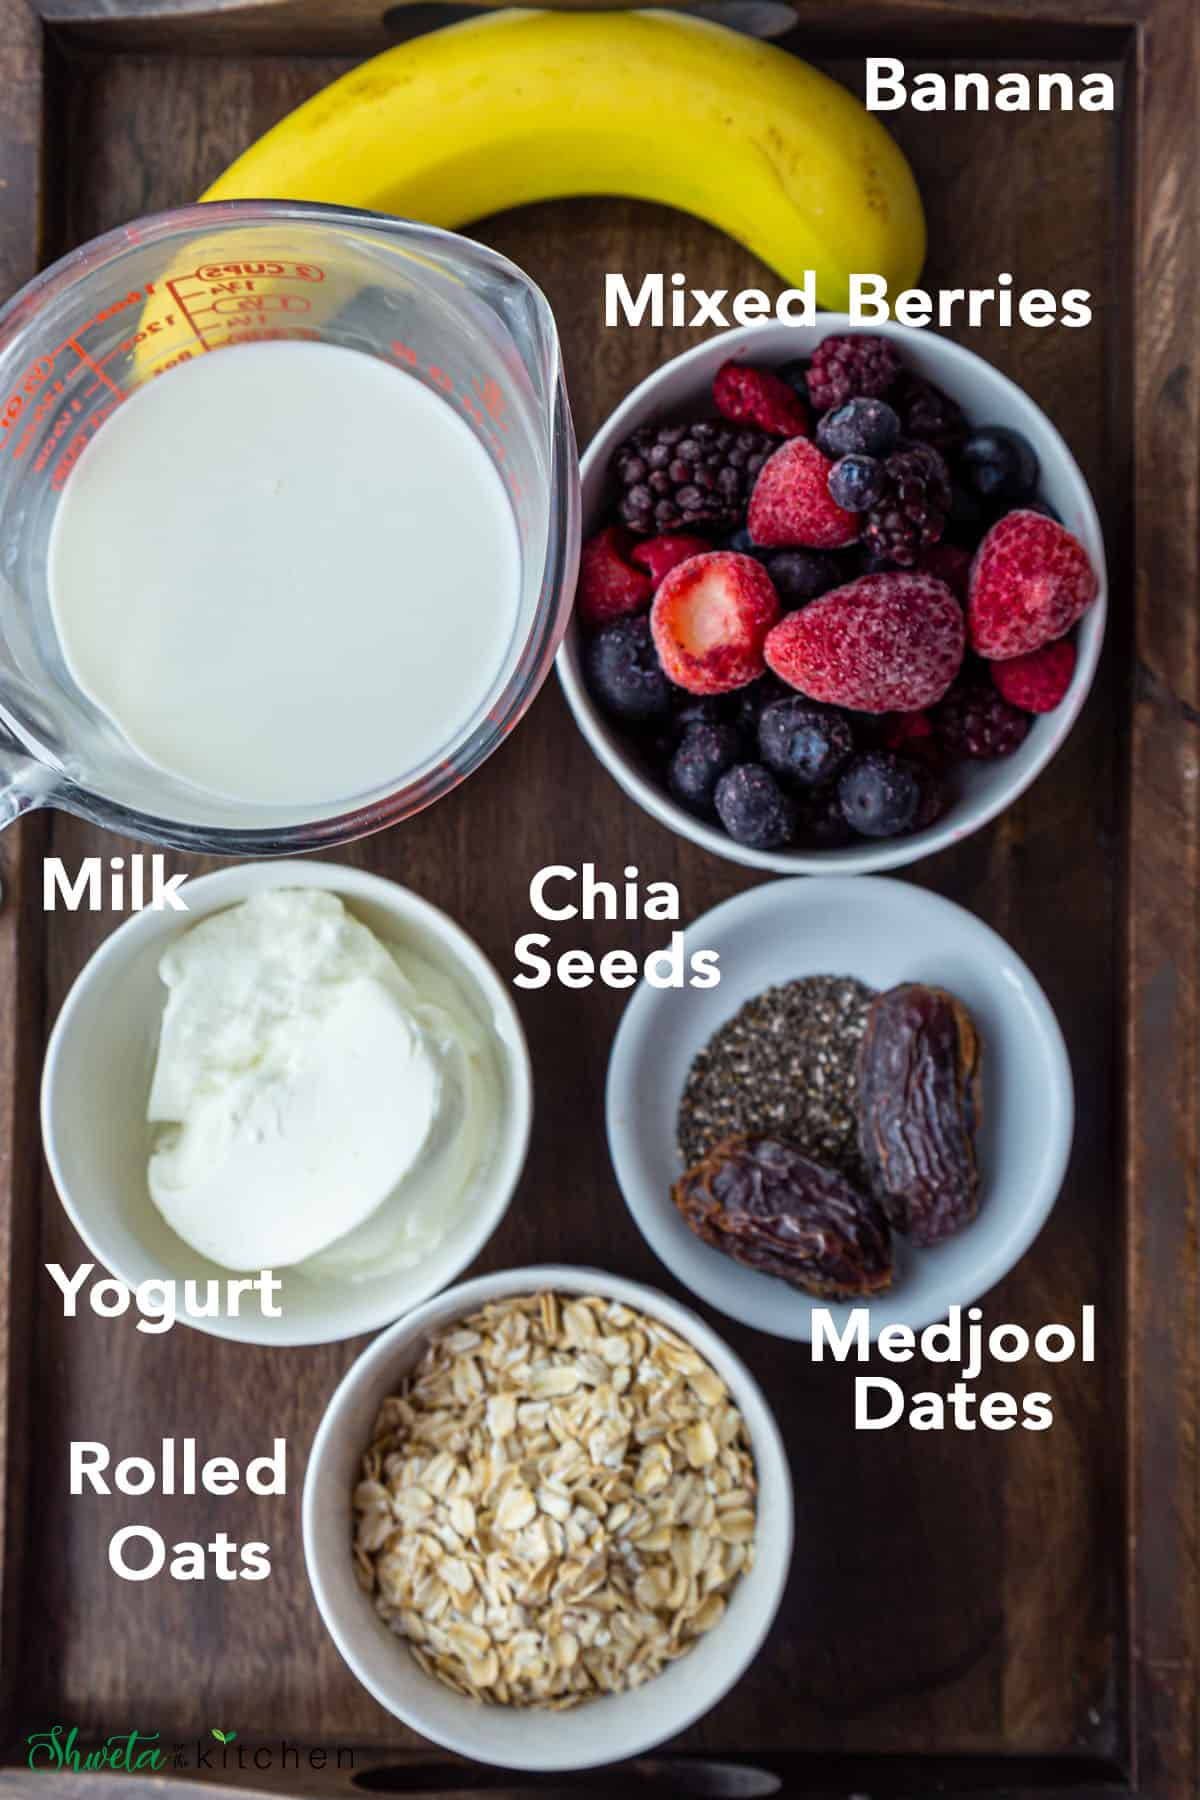 Berry Oat smoothie ingredients in white bowls on a wooden tray